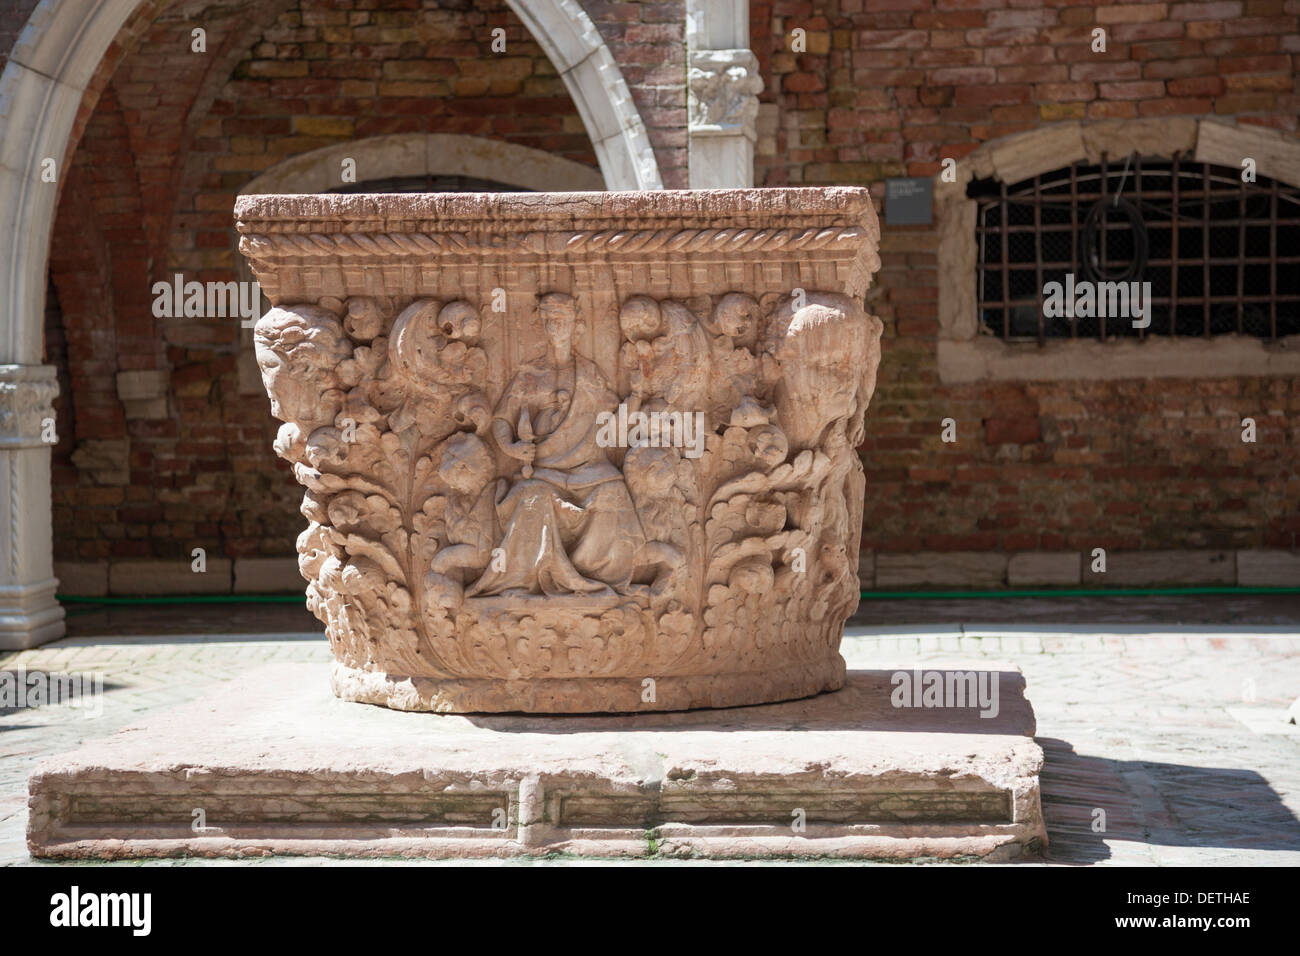 The well of the Ca' d'Oro Palace's courtyard (Venice - Italy). Le puits de la cour du Palais Ca' d'Oro, à Venise (Italie). - Stock Image